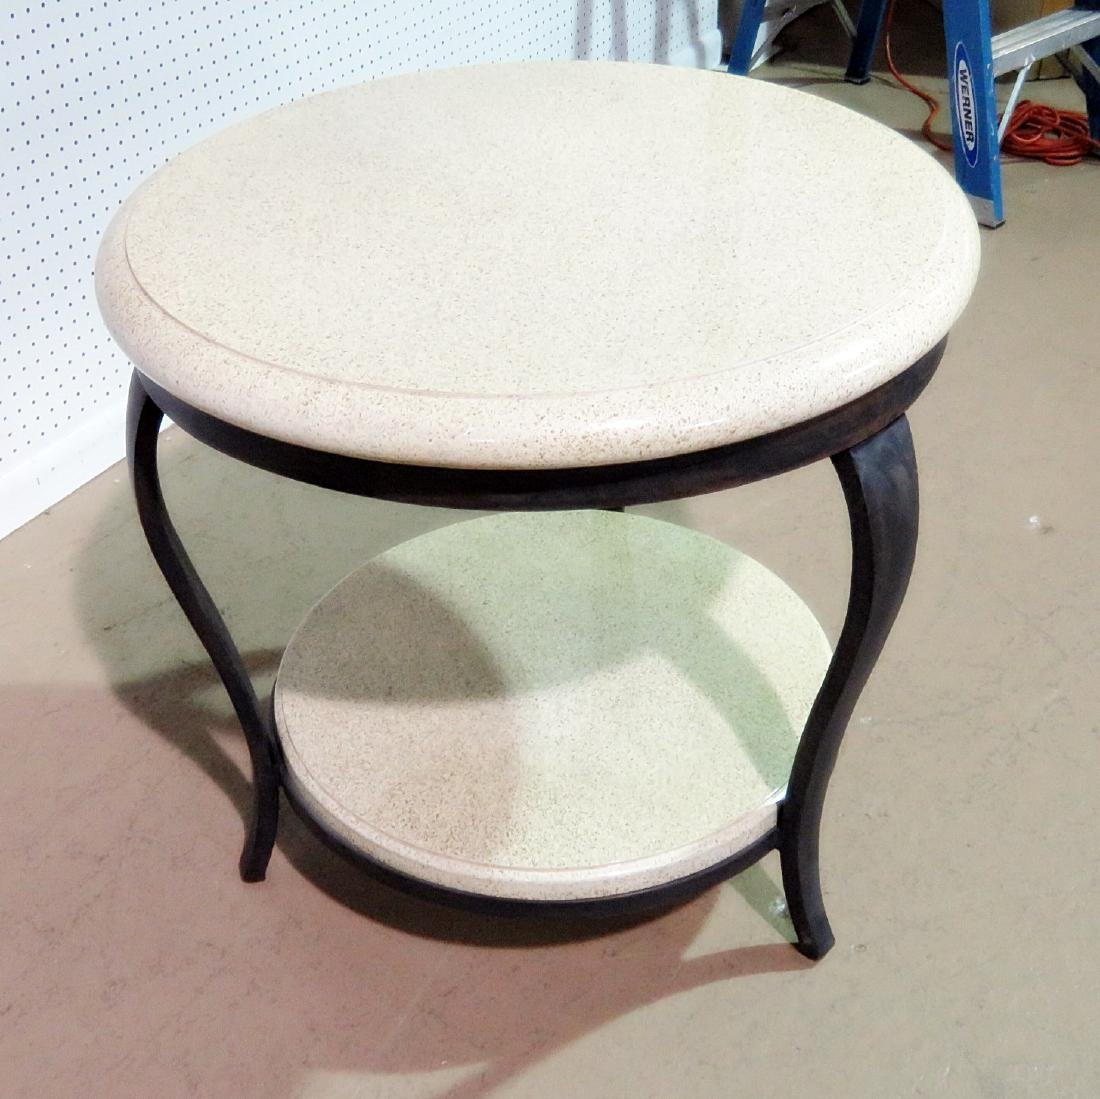 TWO TIER FAUX STONE TOP ACCENT TABLE - 5